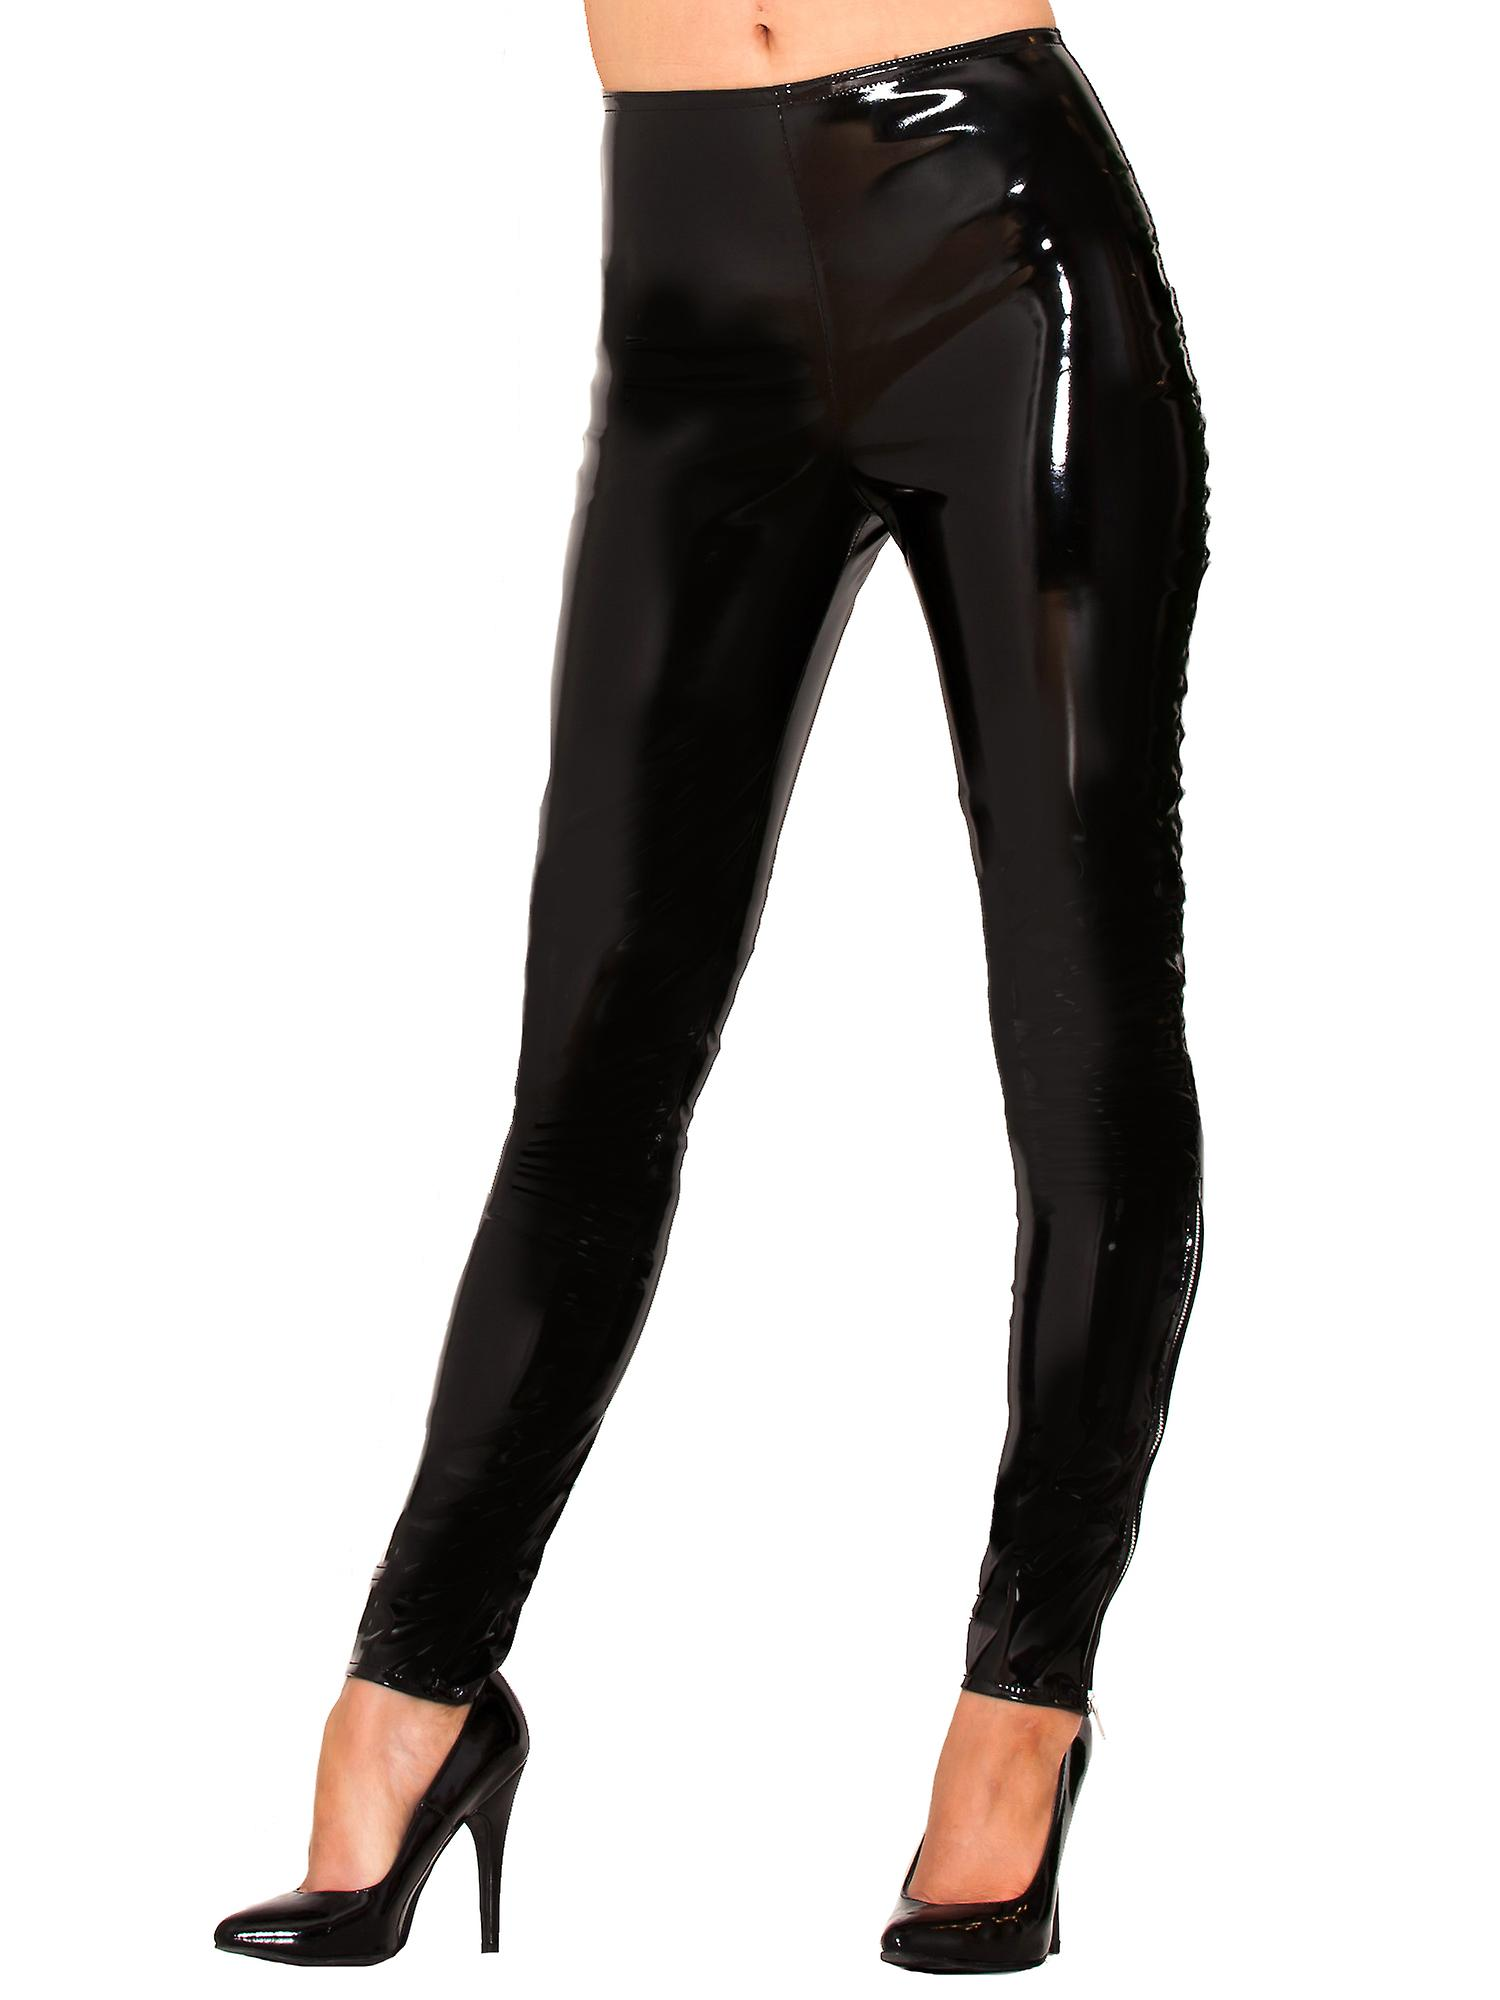 Honour Women's Sexy Leggings in PVC Rubber Hip Hugging High Quality Stitching